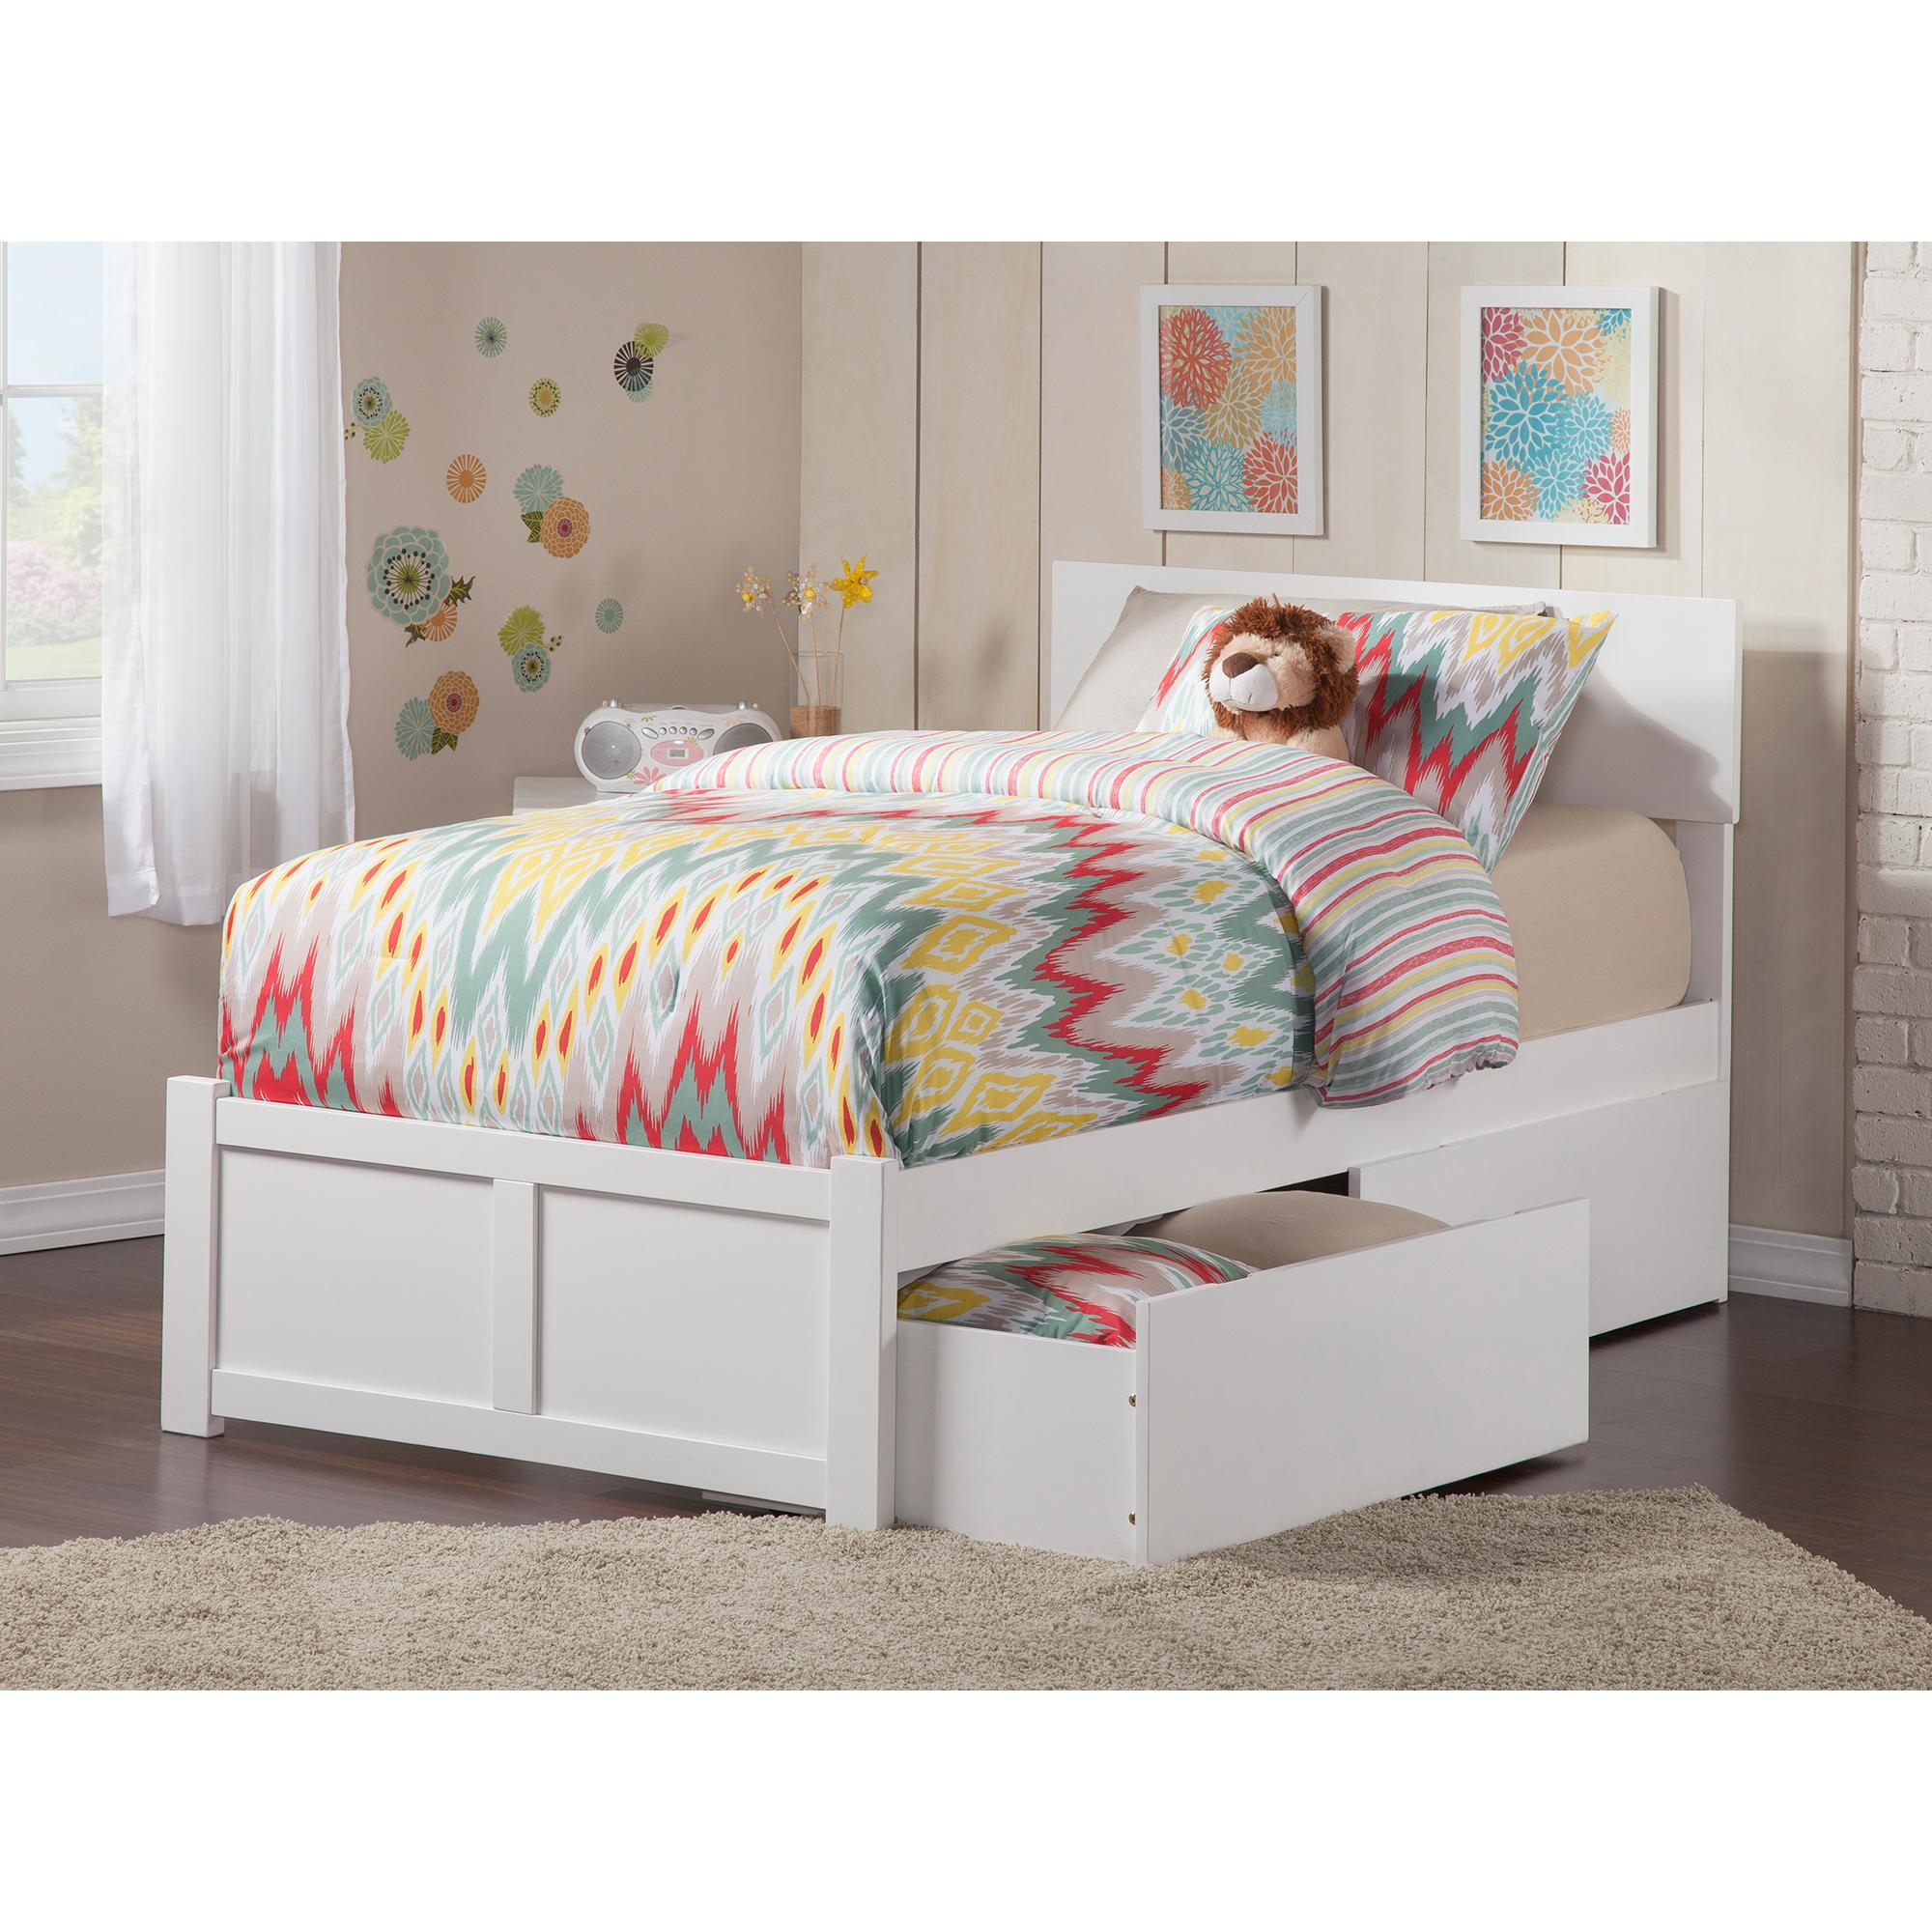 Eco Friendly Twin Xl Bed In White Finish Atlantic Furniture 77 In Home Kitchen Kids Furniture